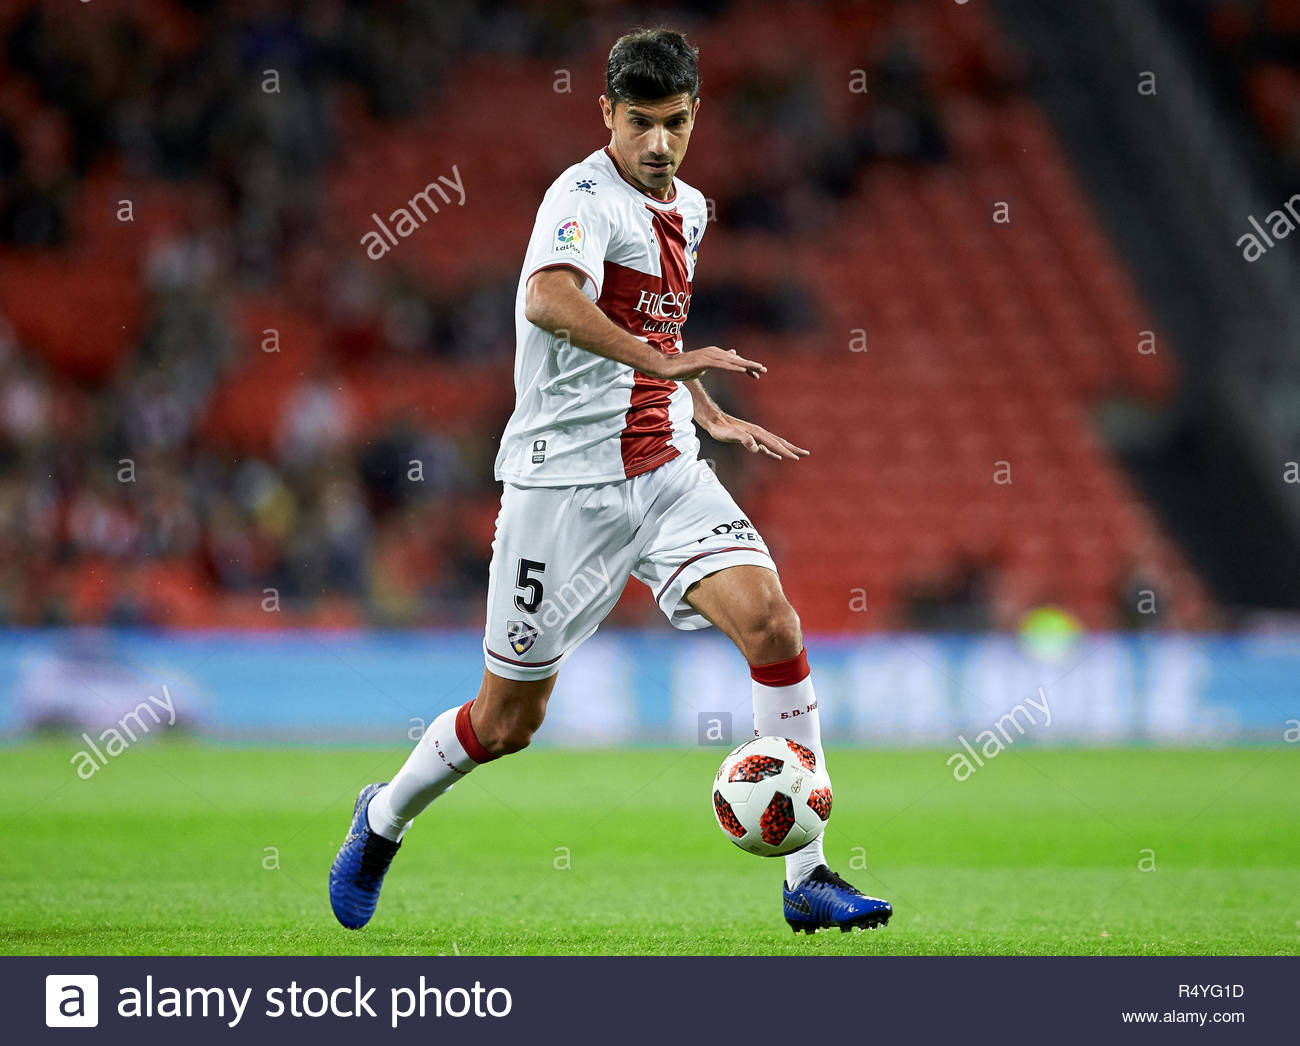 Bilbao, northern Spain, Wednesday, November, 28, 2018. (5) Juan Aguilera during the Spanish Copa del Rey soccer match between Athletic Club Bilbao and S.D Huesca at San Mames stadium. Credit: Ion Alcoba Beitia/Alamy Live News - Stock Image